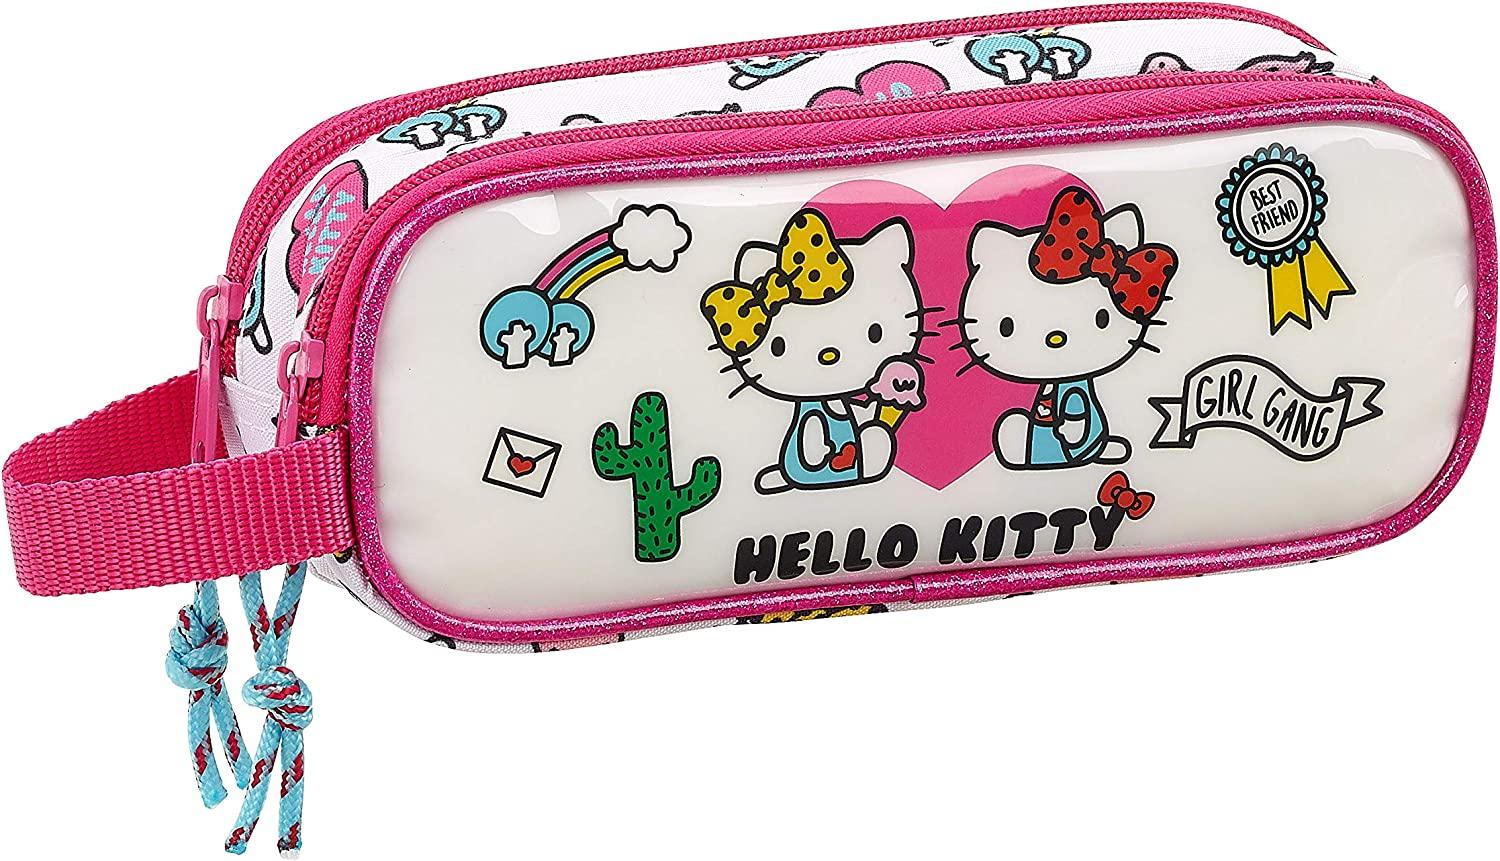 Hello Kitty Estuche Portatodo Doble 2 Cremalleras Escolar, 21 cm, Rosa/Blanco: Amazon.es: Equipaje